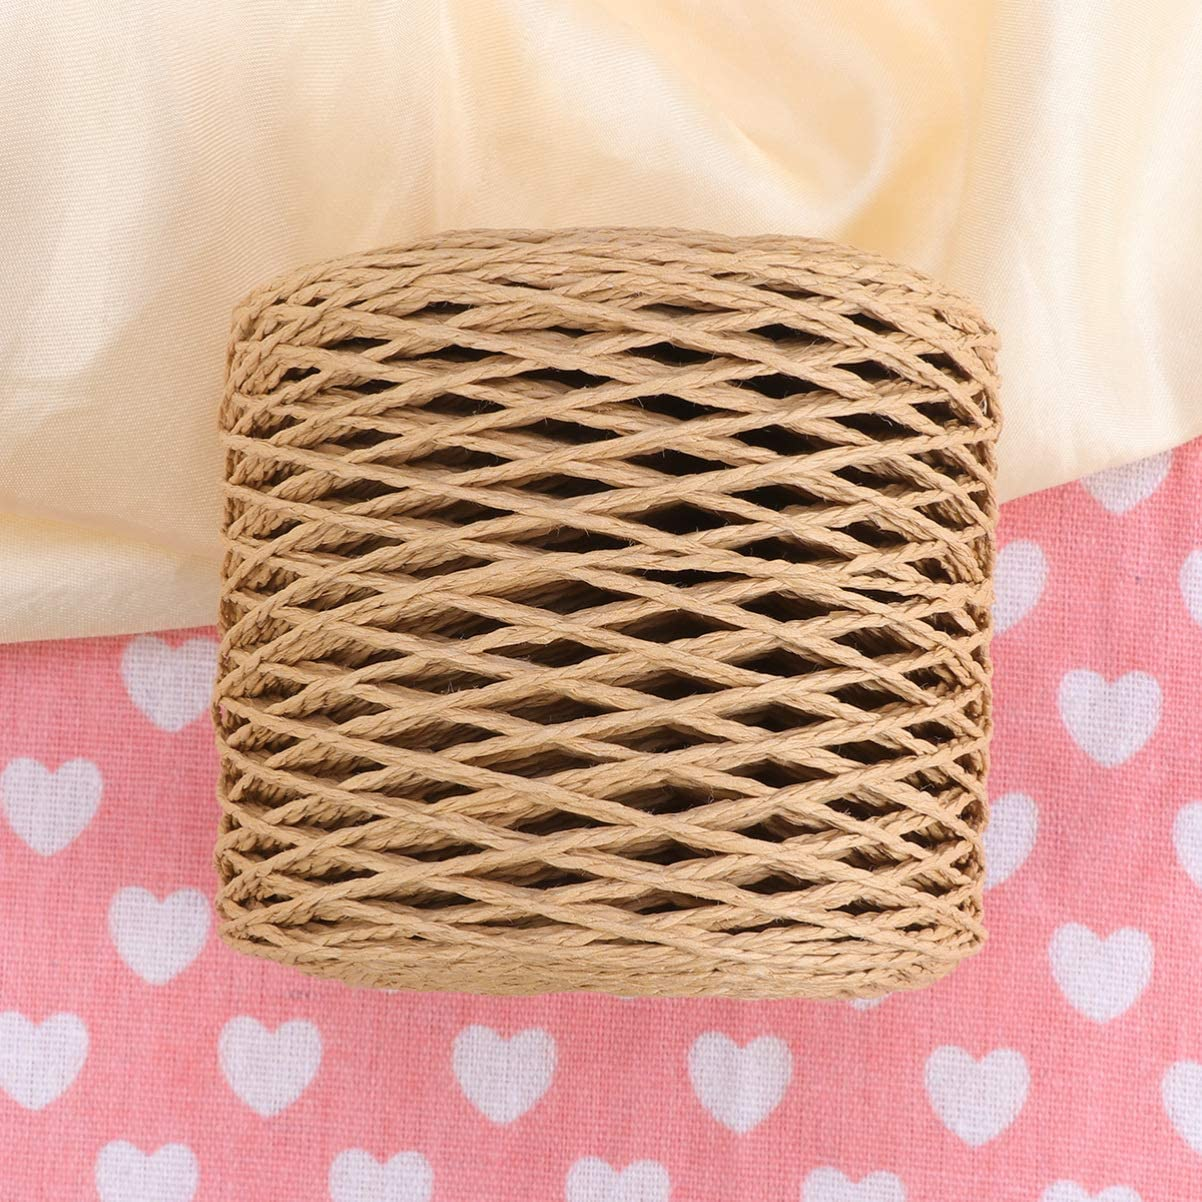 HEALLILY Raffia Paper Ribbon Twine Strings Natural Packing Rope for Festival Gifts Wrapping Weaving Hat Cap Bows Decoration 200m Coffee